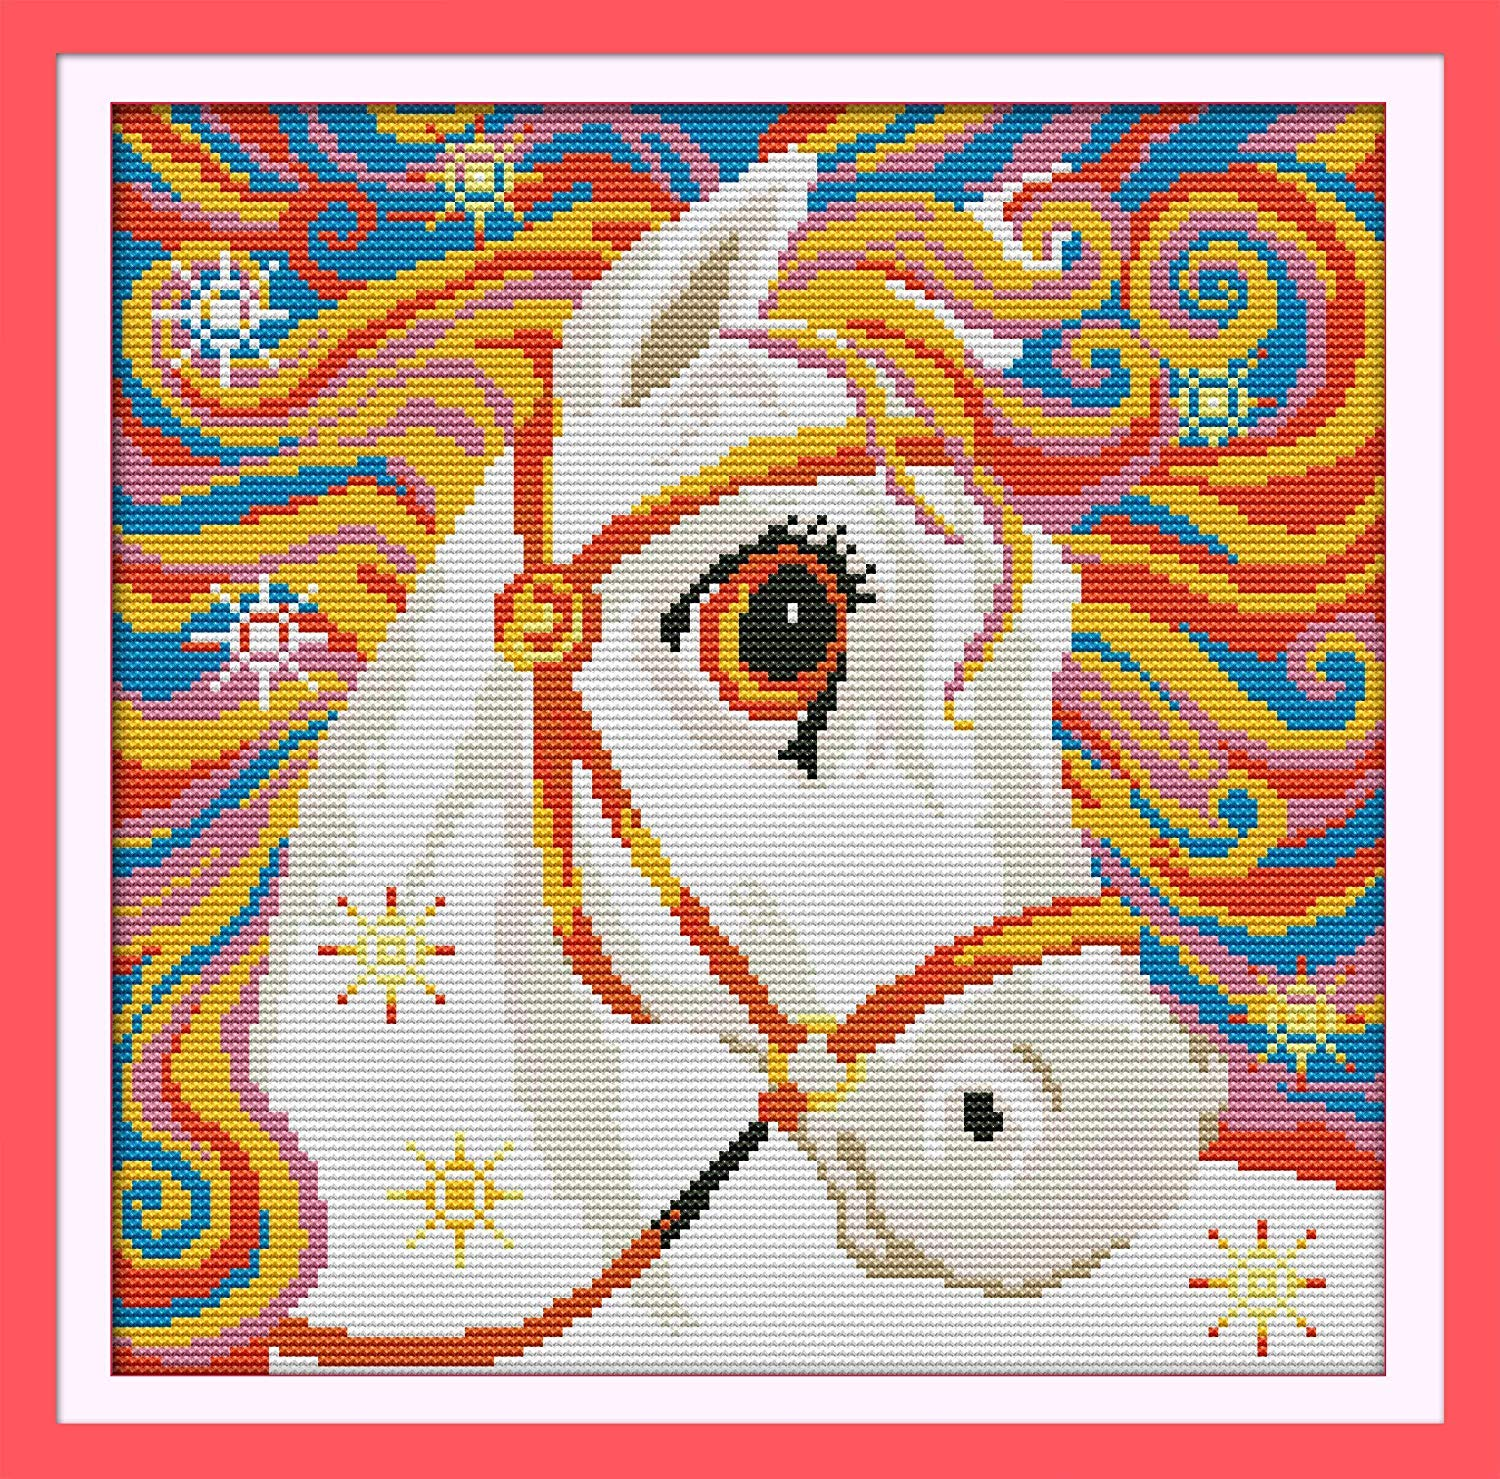 Embroidery Needlepoint Kits Unicorn in Garden Cross Stitch Stamped Kits Pre-Printed Cross-Stitching Starter Patterns for Beginner Kids or Adults